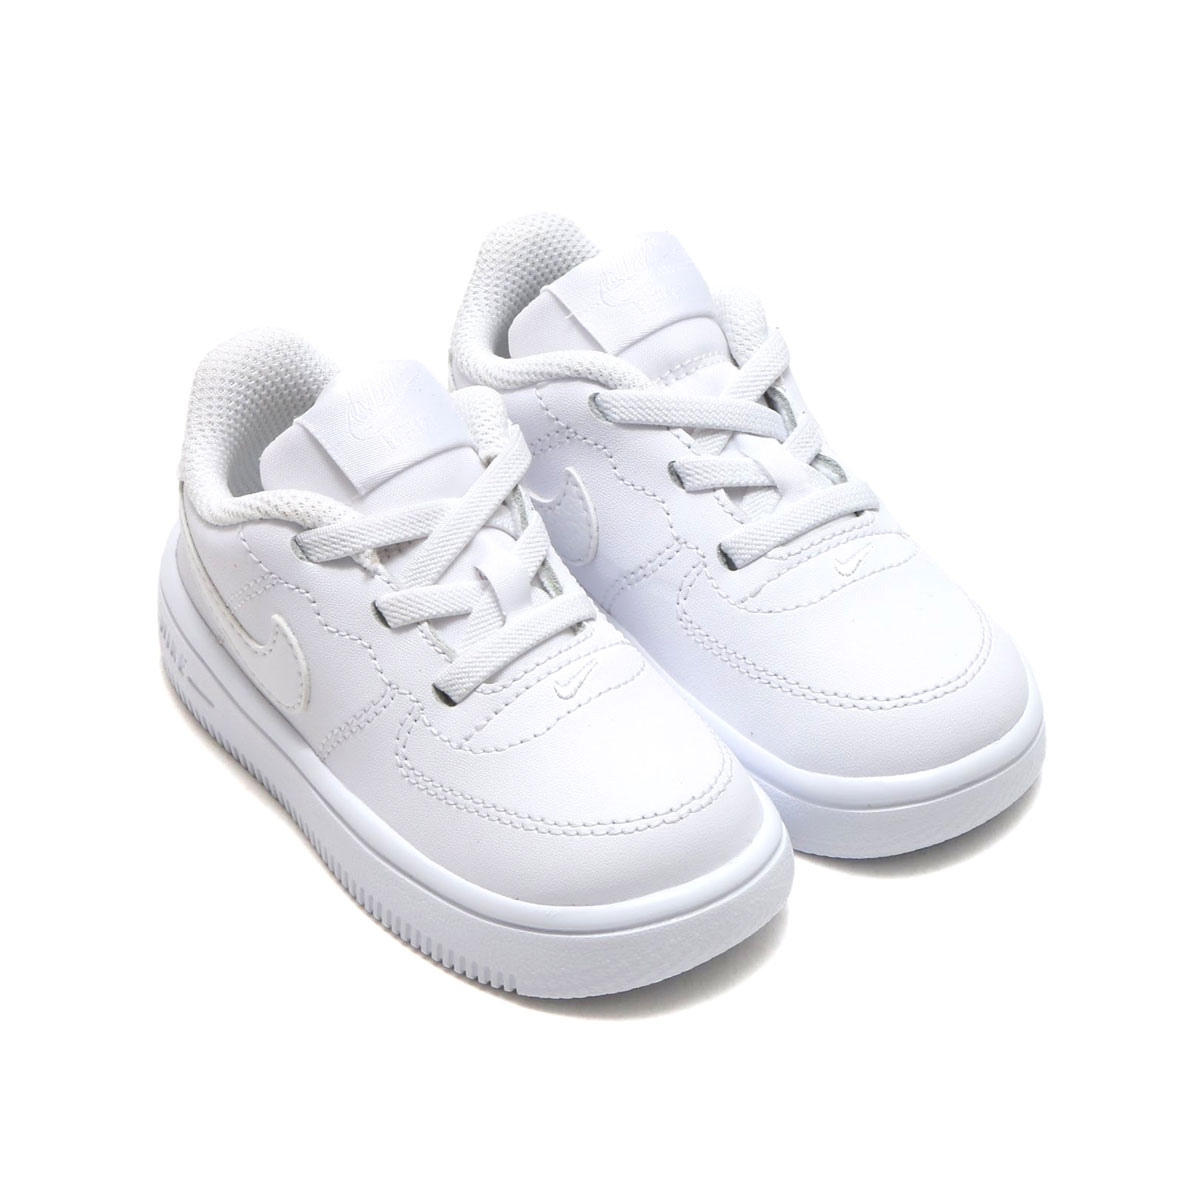 finest selection 54f21 6db33 ... NIKE FORCE 1  18 (TD) (WHITE WHITE) (Nike force ...